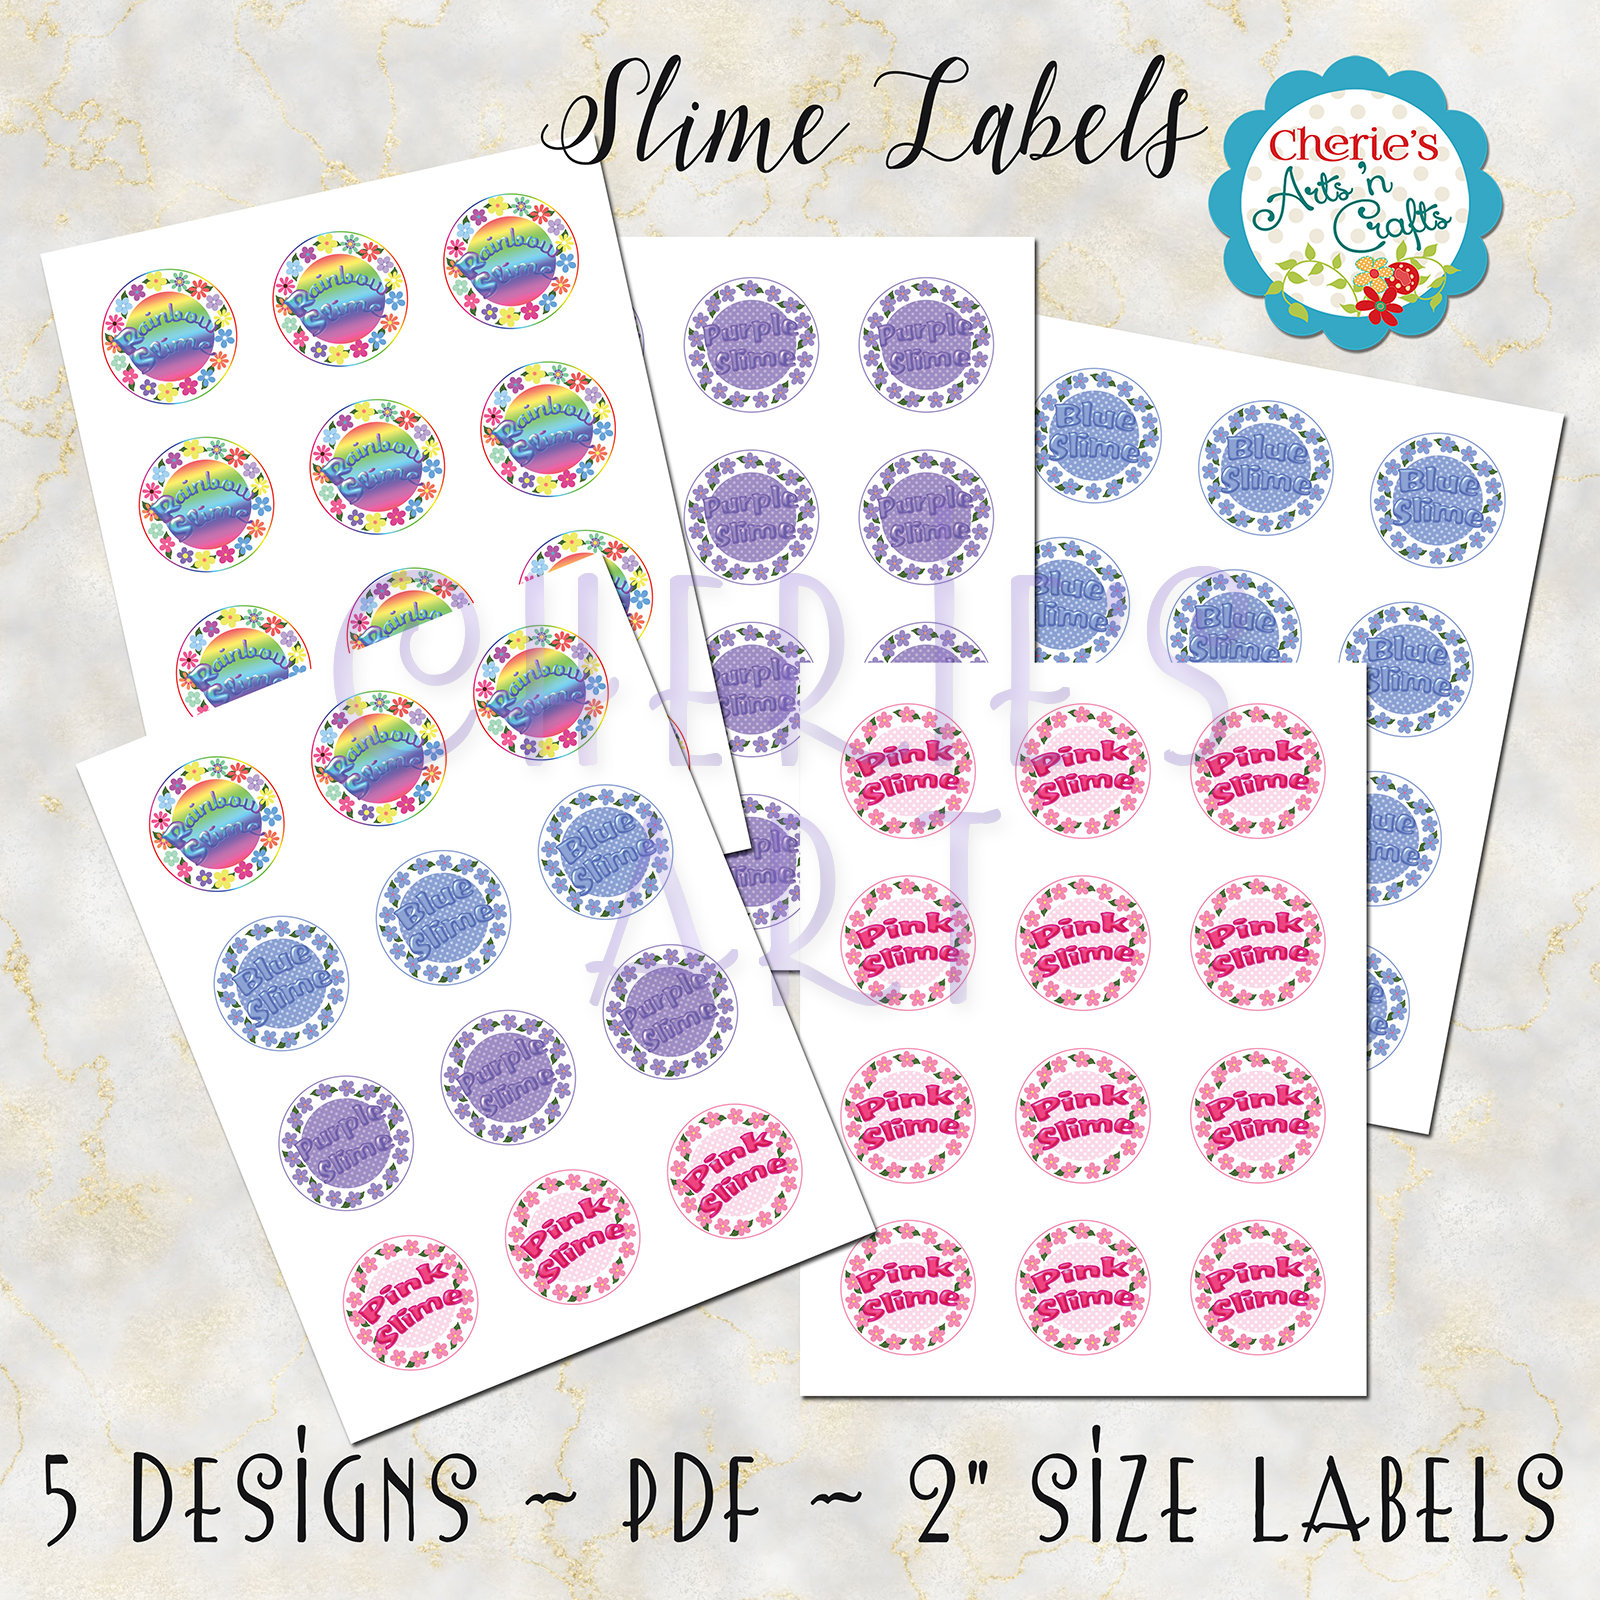 Slime Labels You Print At Home 2 Inch Circles Template for | Etsy